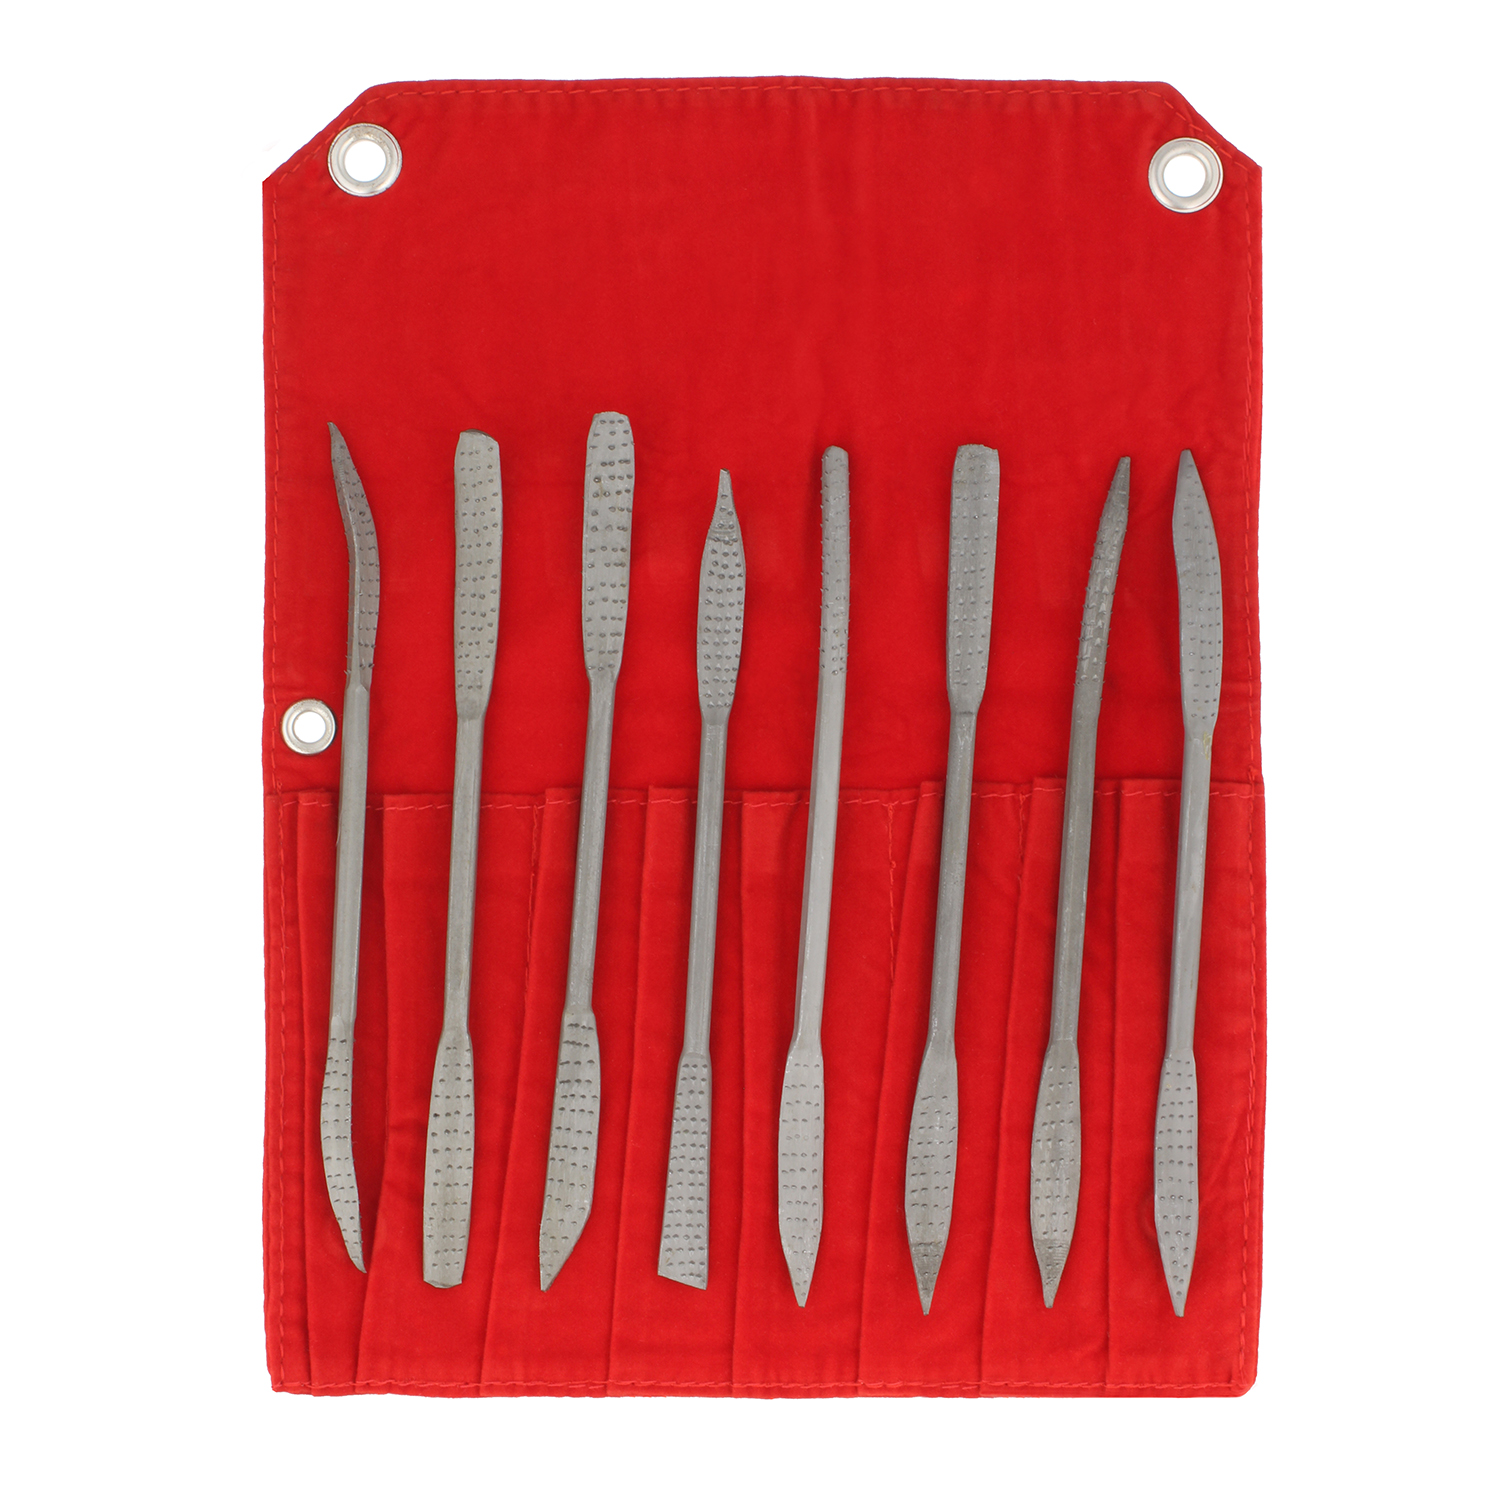 DCT Riffler File Riffler Rasp 8pc Set for Wood & Metal Sculpting Shaping Filing by Deadwood Crafted Tools